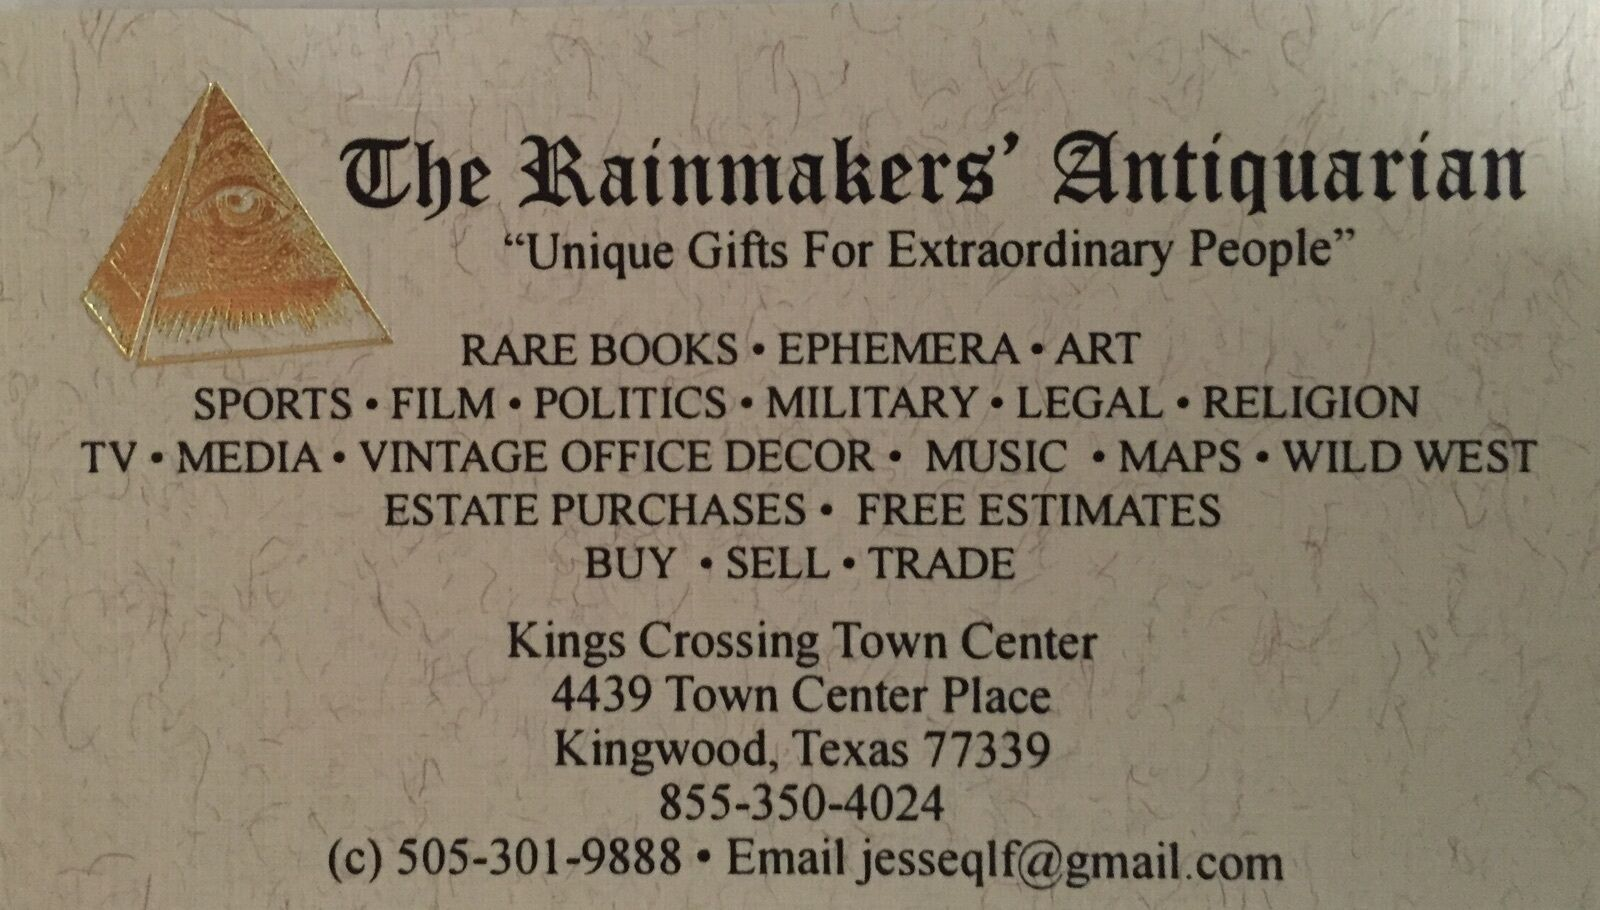 The Rainmakers' Antiquarian